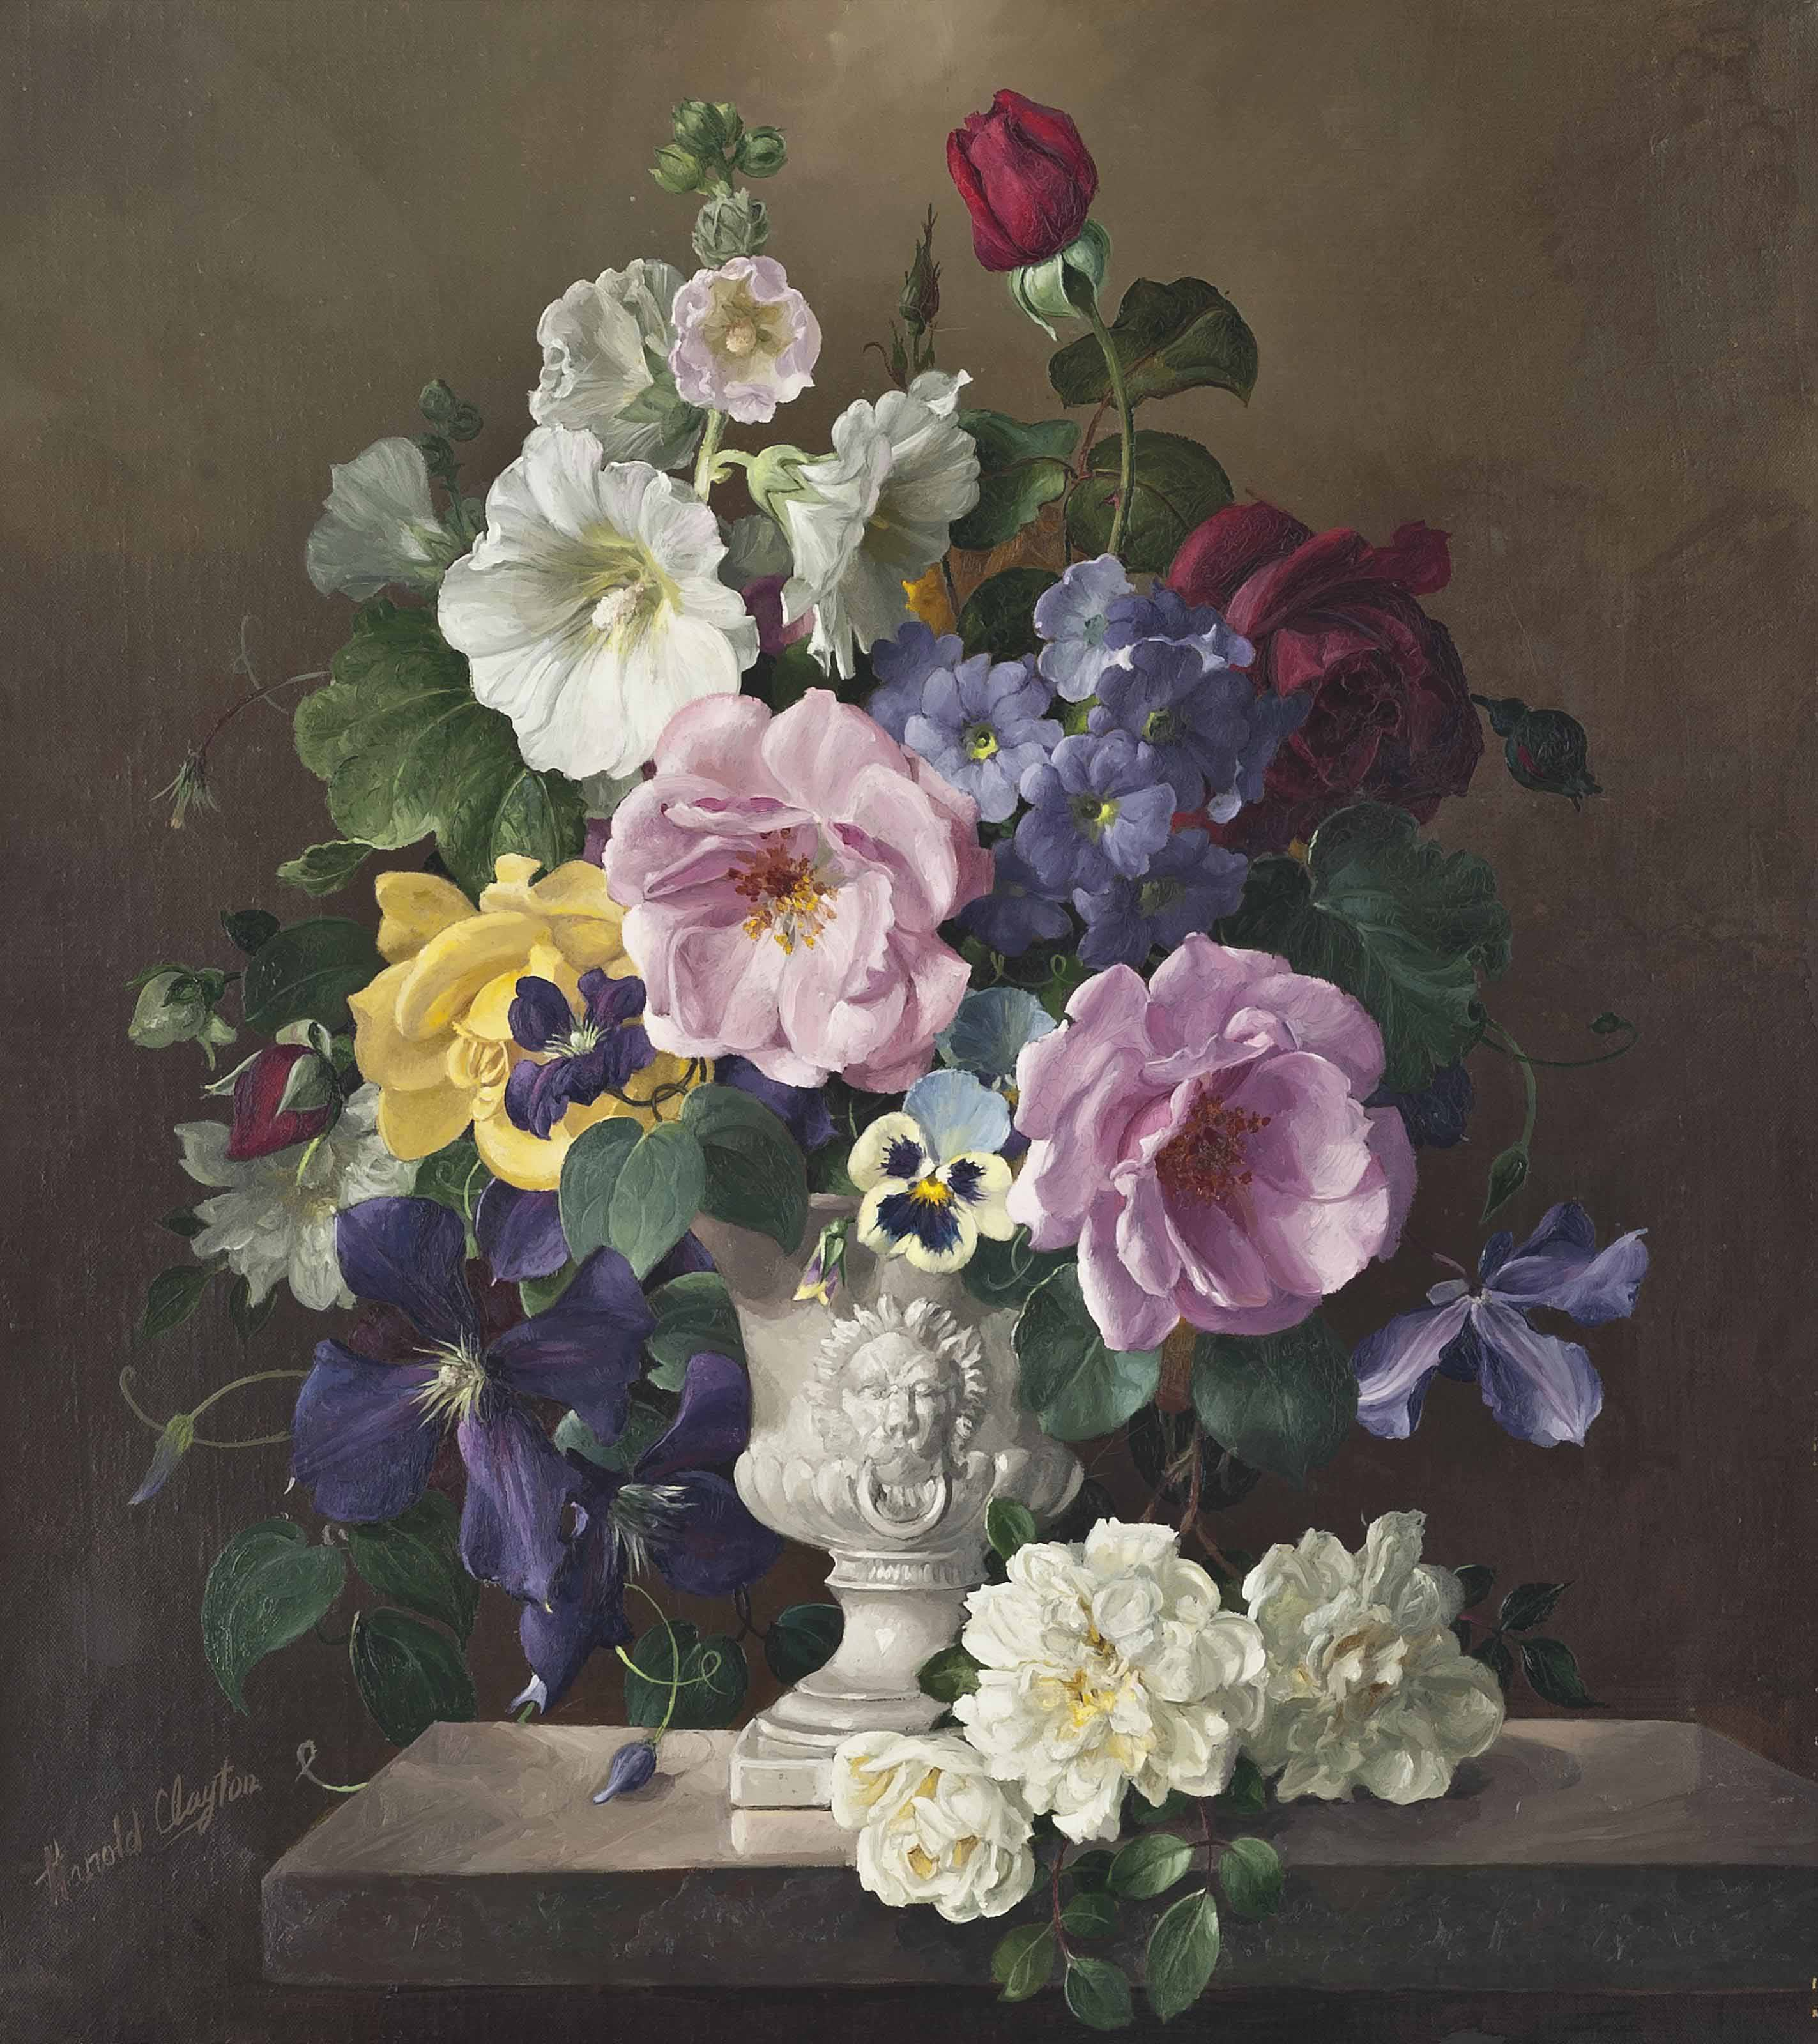 Roses, clematis, lavatera, and pansies in an urn